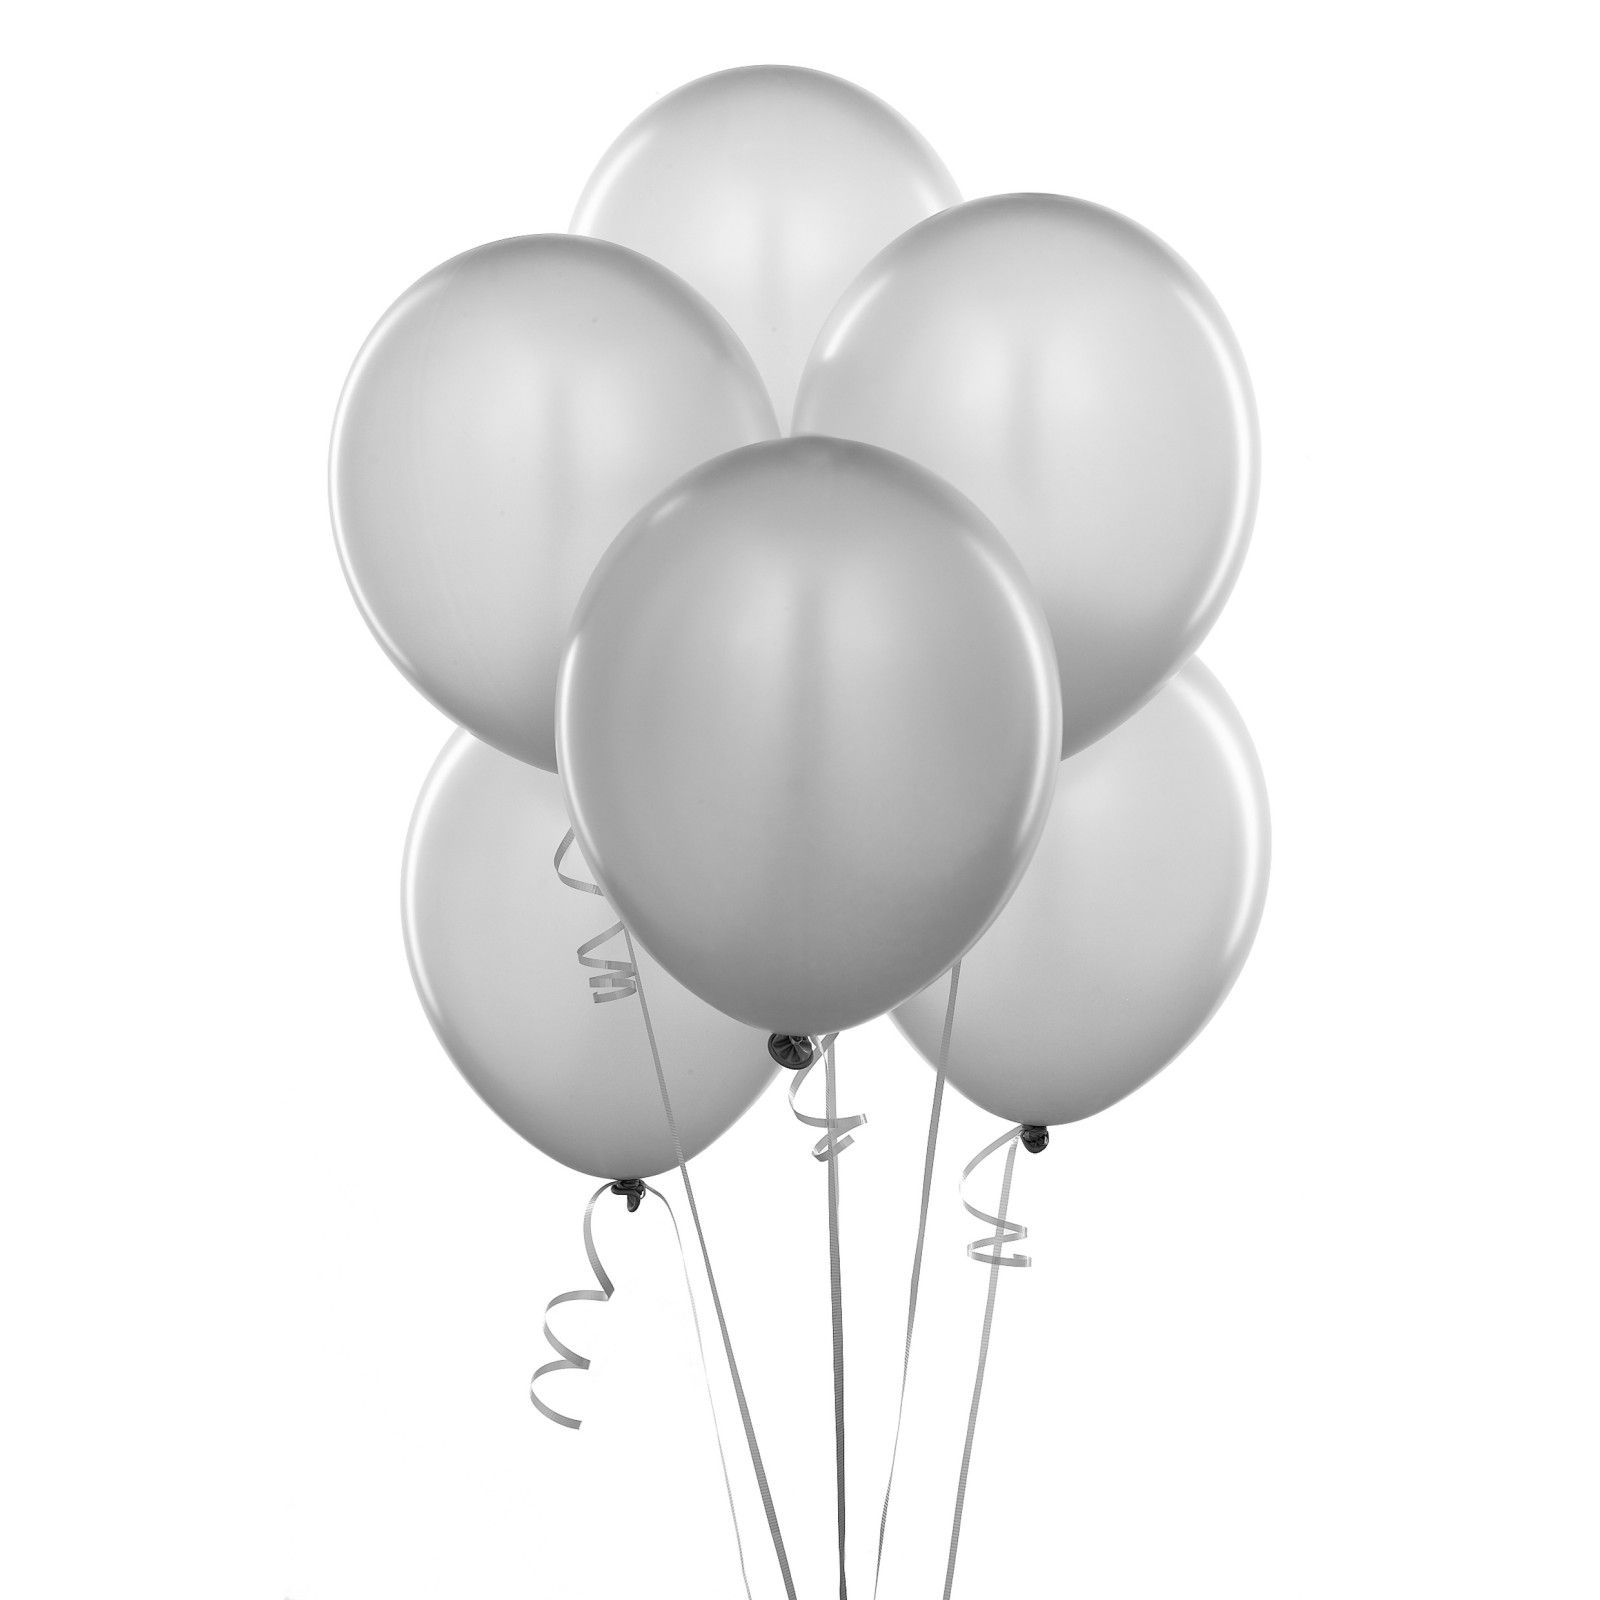 silver balloons dream wedding